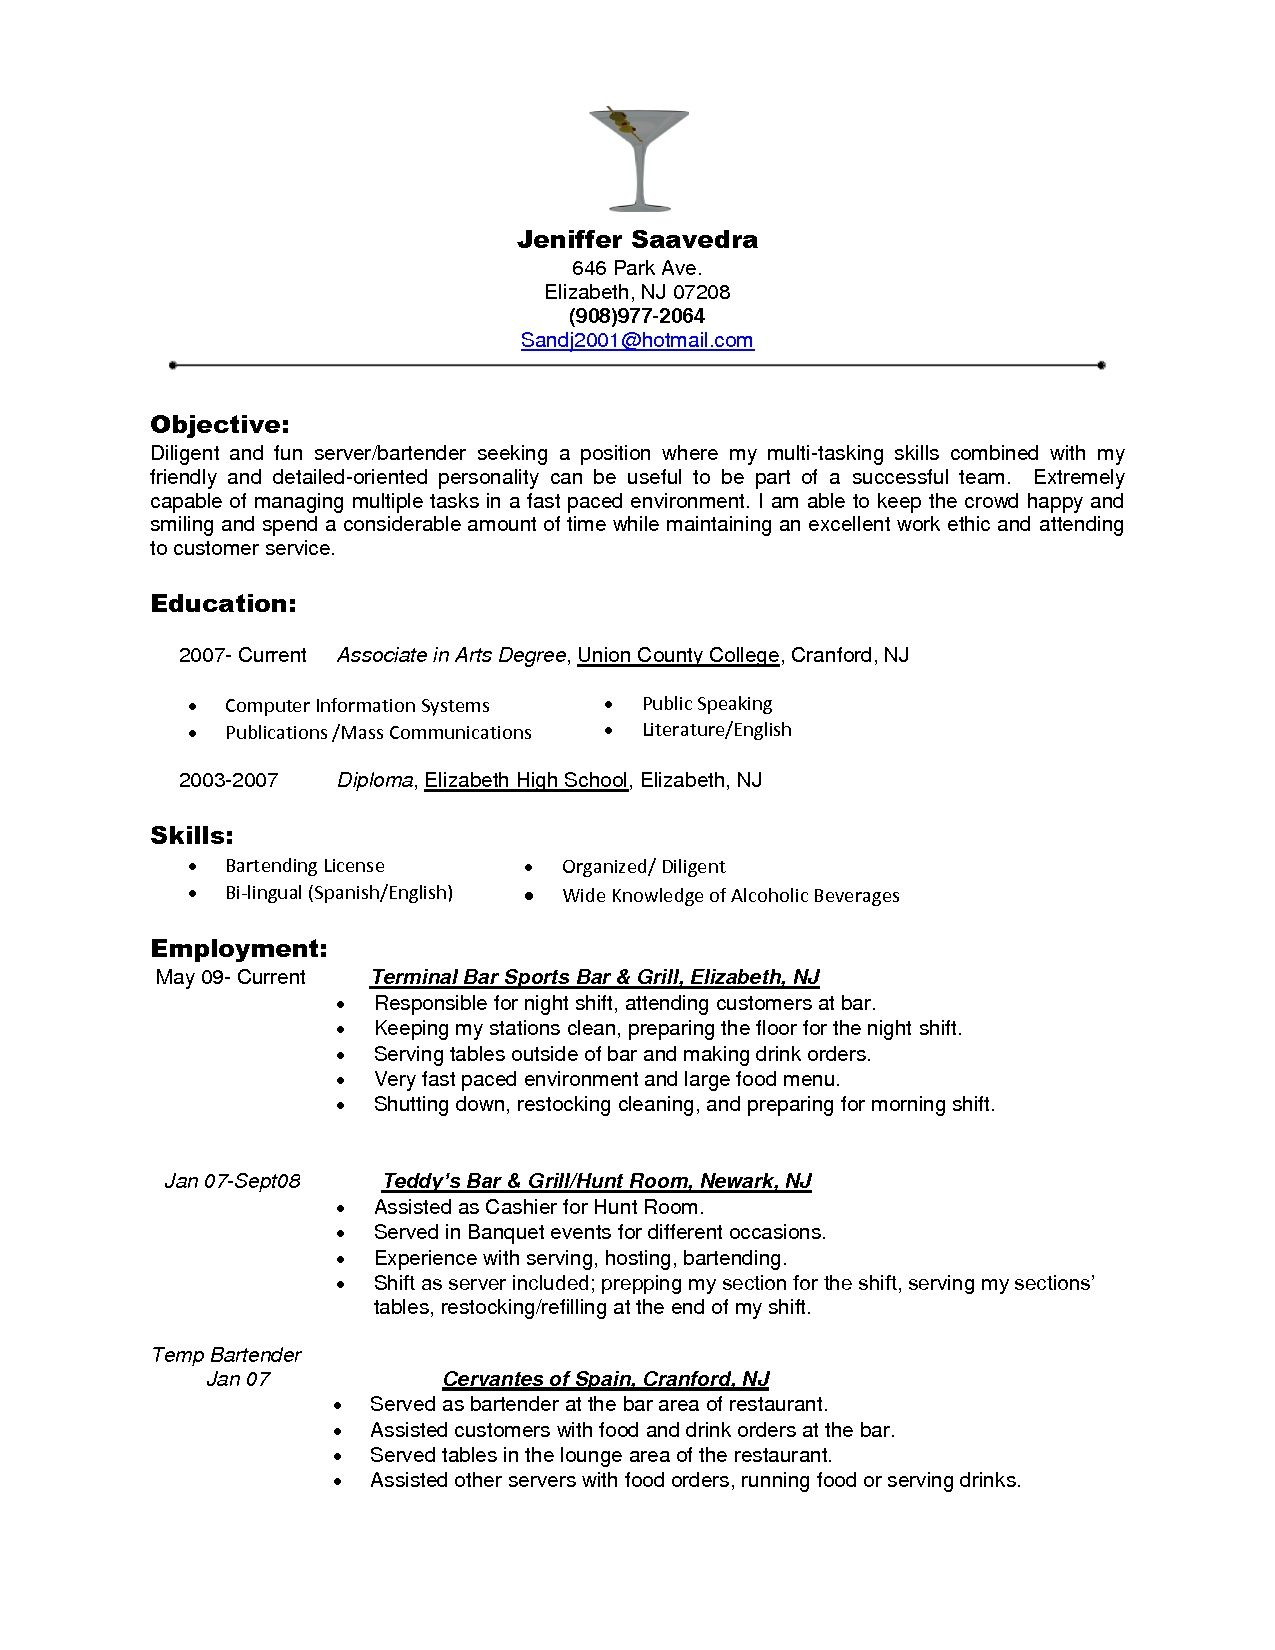 Bartender Objectives Resume   Bartender Objectives Resume Will Give Ideas  And Strategies To Develop Your Own  Bartender Duties Resume